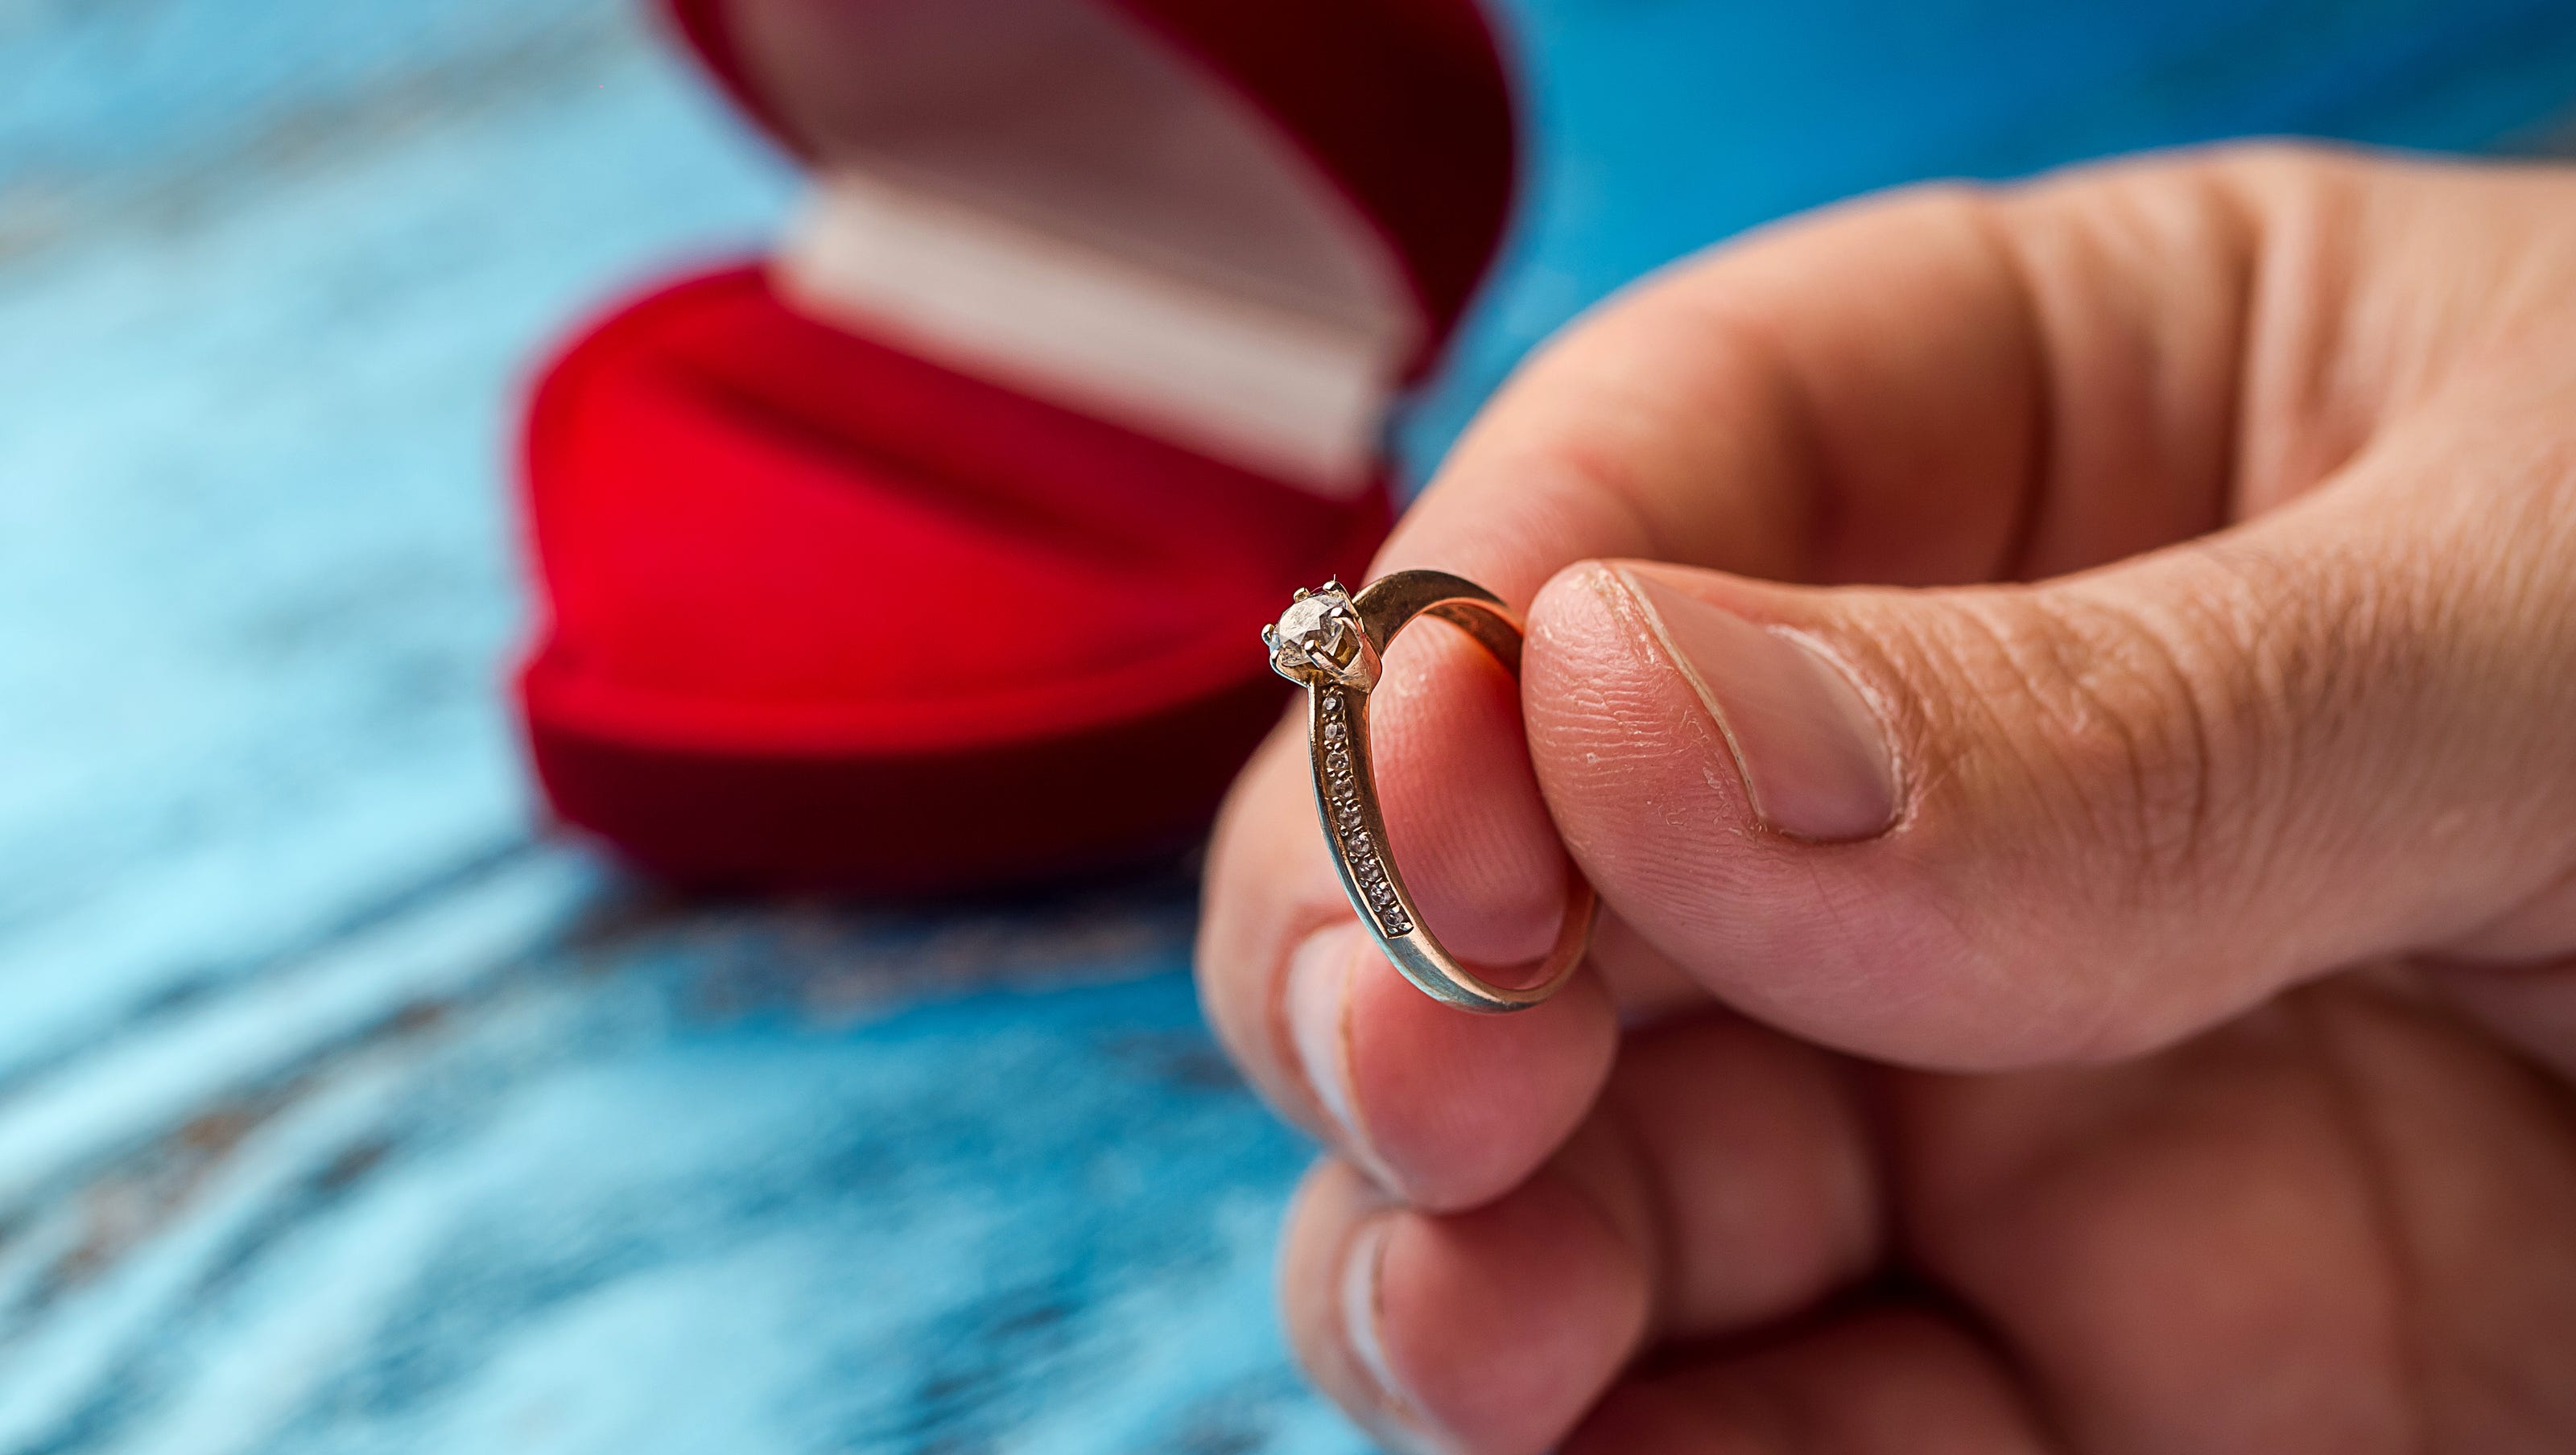 Engagement Ring: Who Gets To Keep It If The Wedding Is